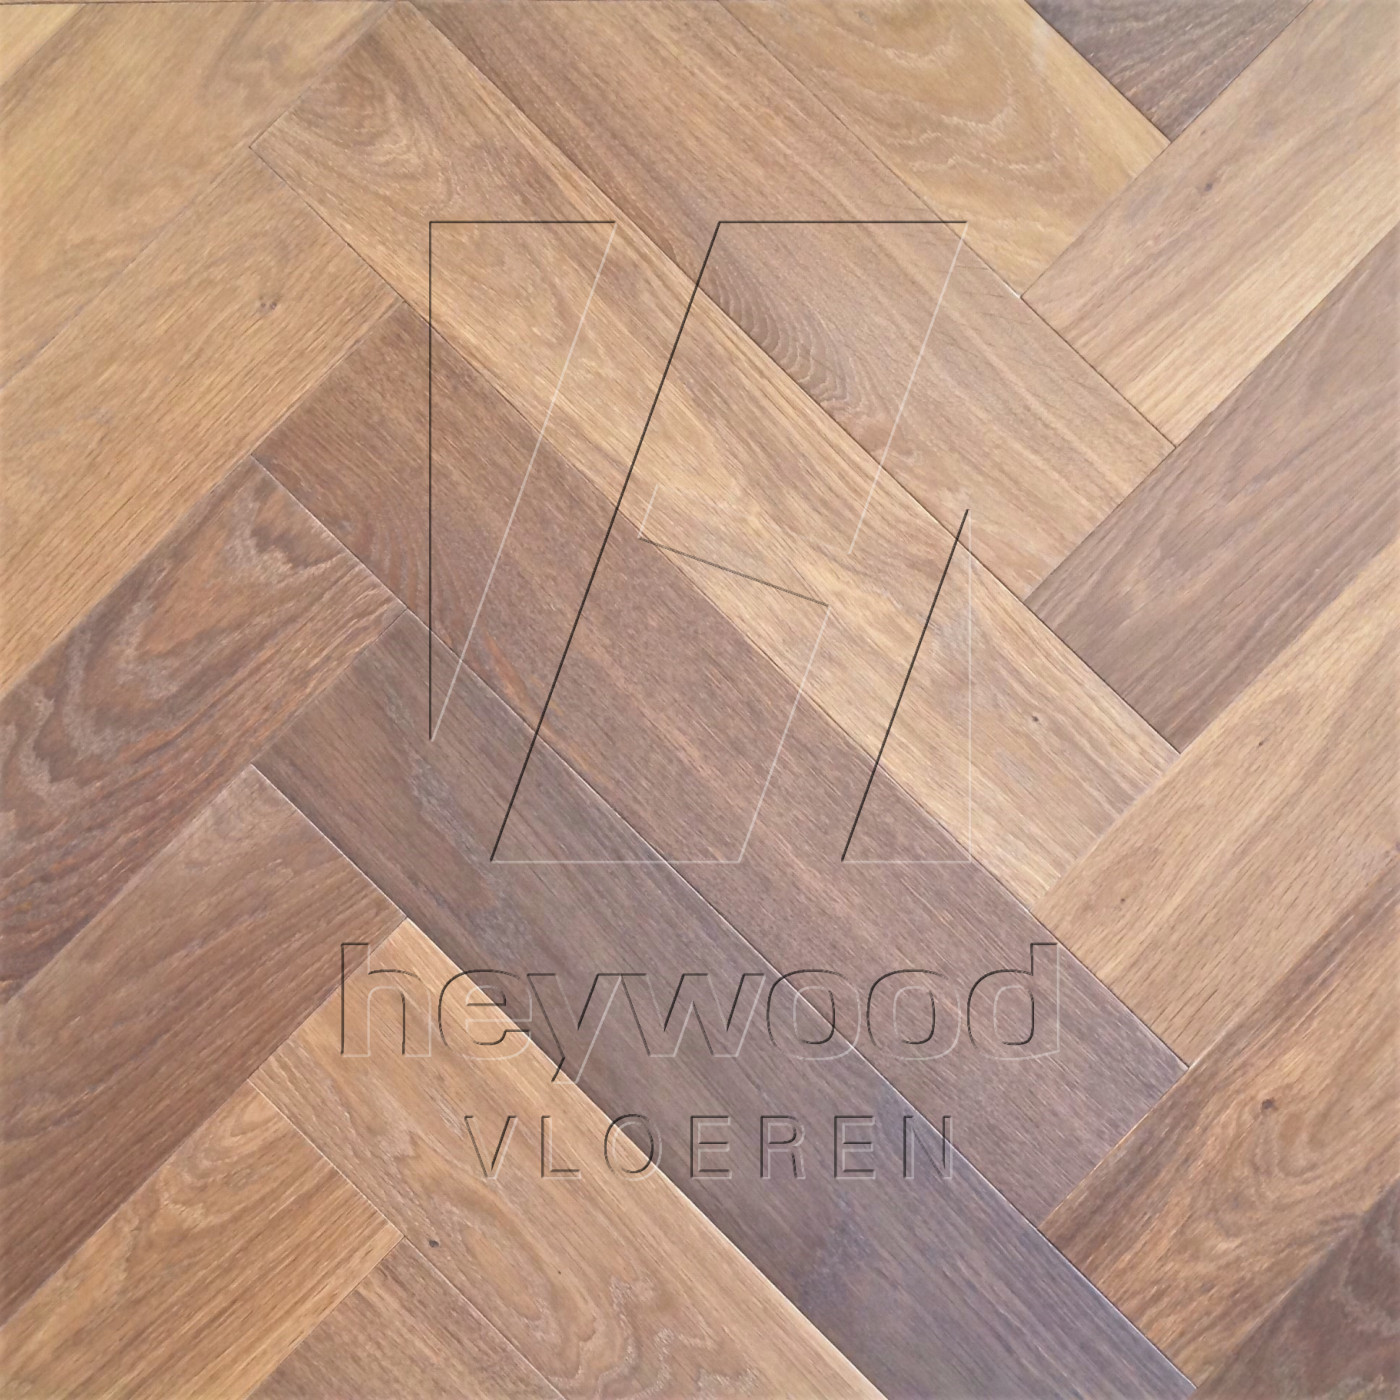 Herringbone Nanga Parbat coloured in Herringbone of Pattern & Panel Floors